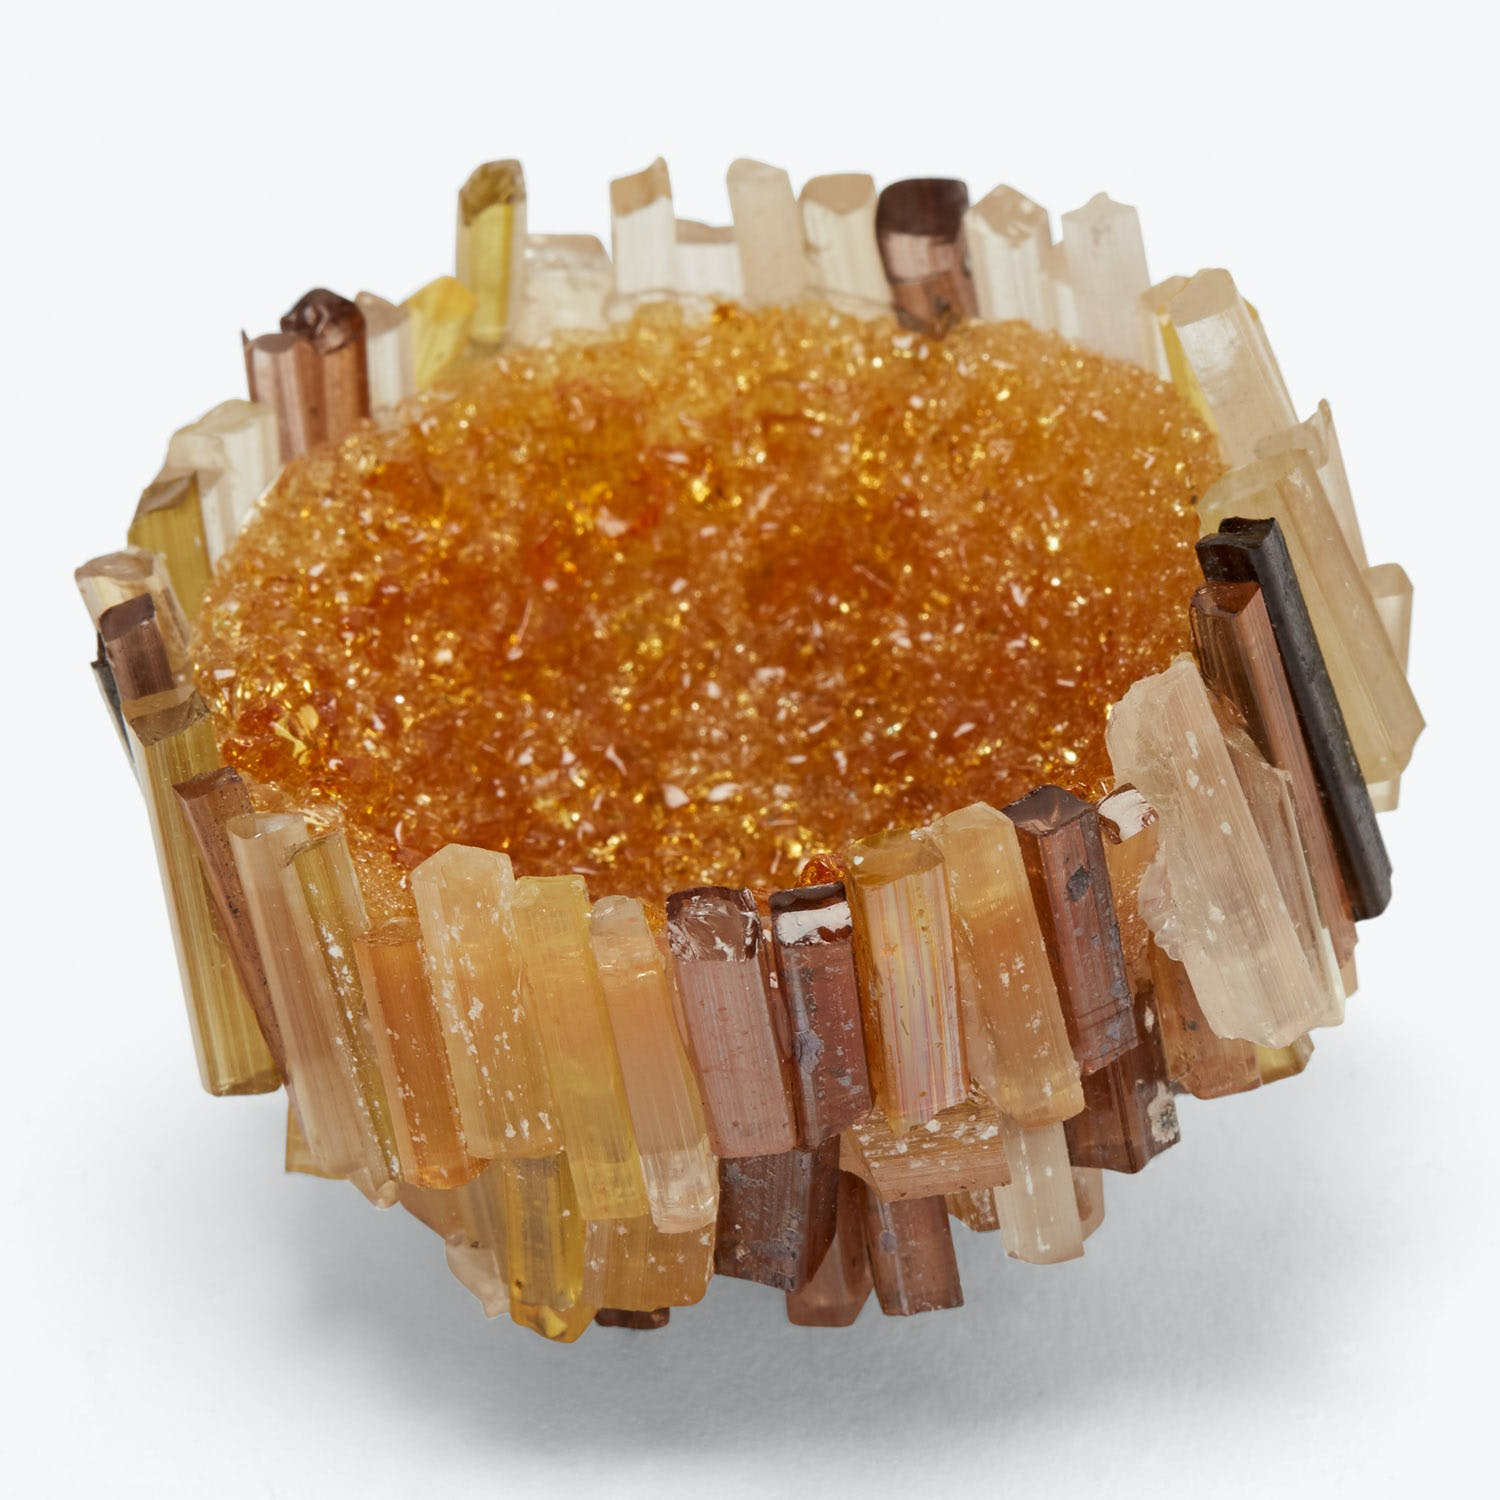 LBK Studio Extra Small Sea Urchin Bowl Amber